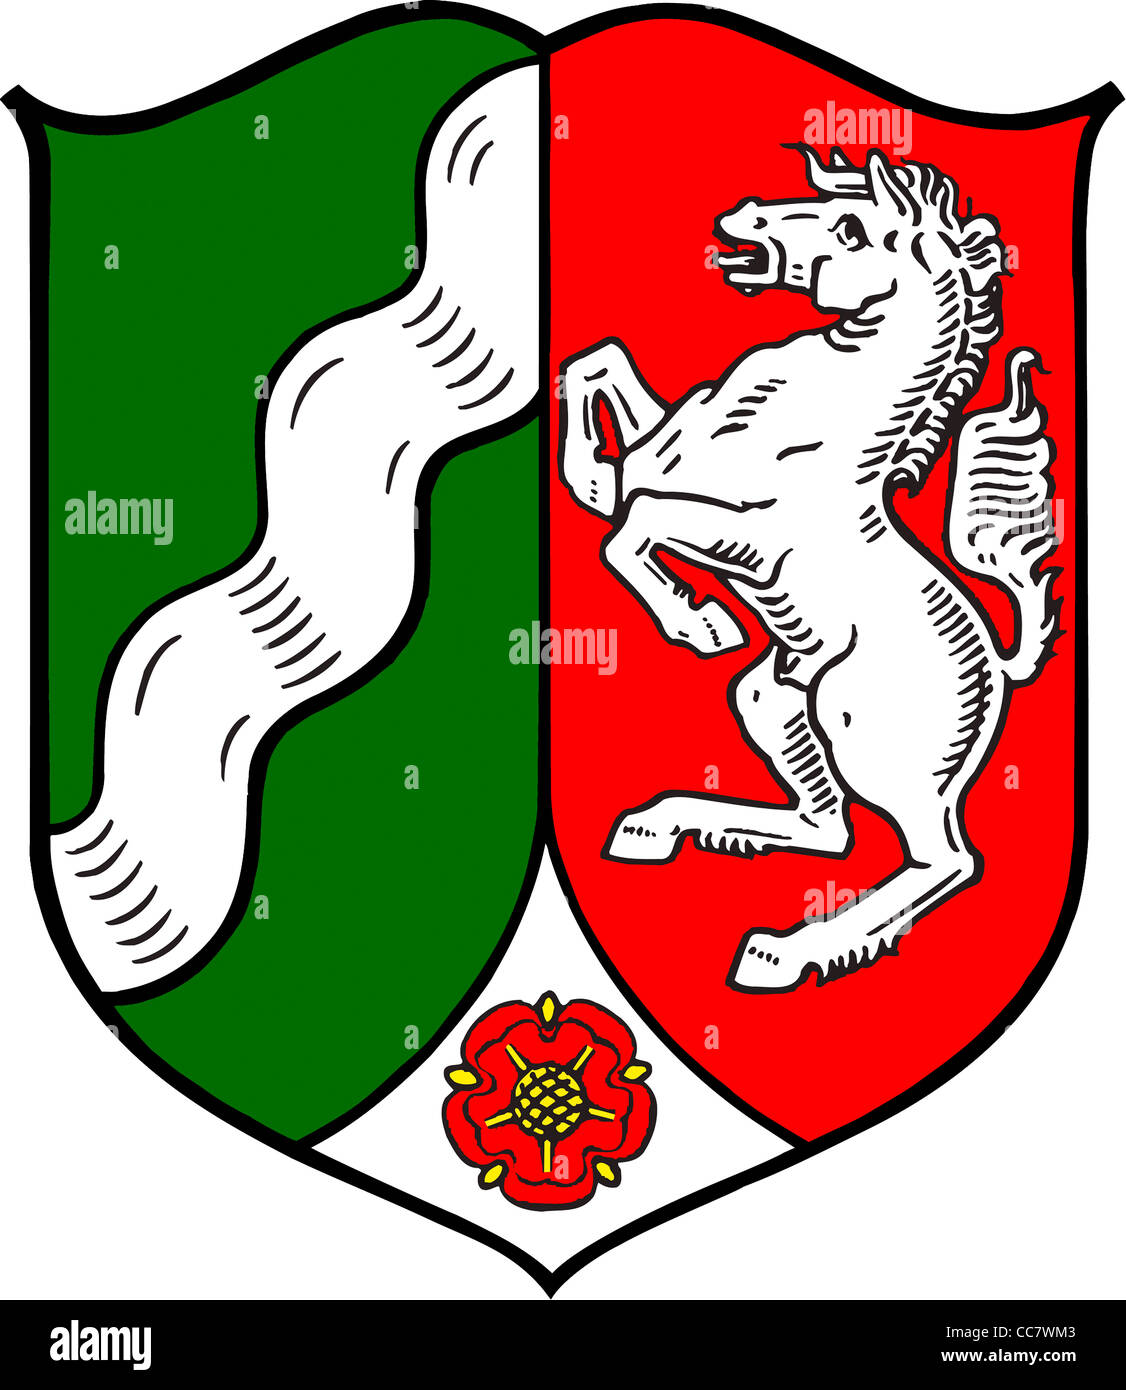 Coat of arms of the German federal state North Rhine Westphalia. - Stock Image